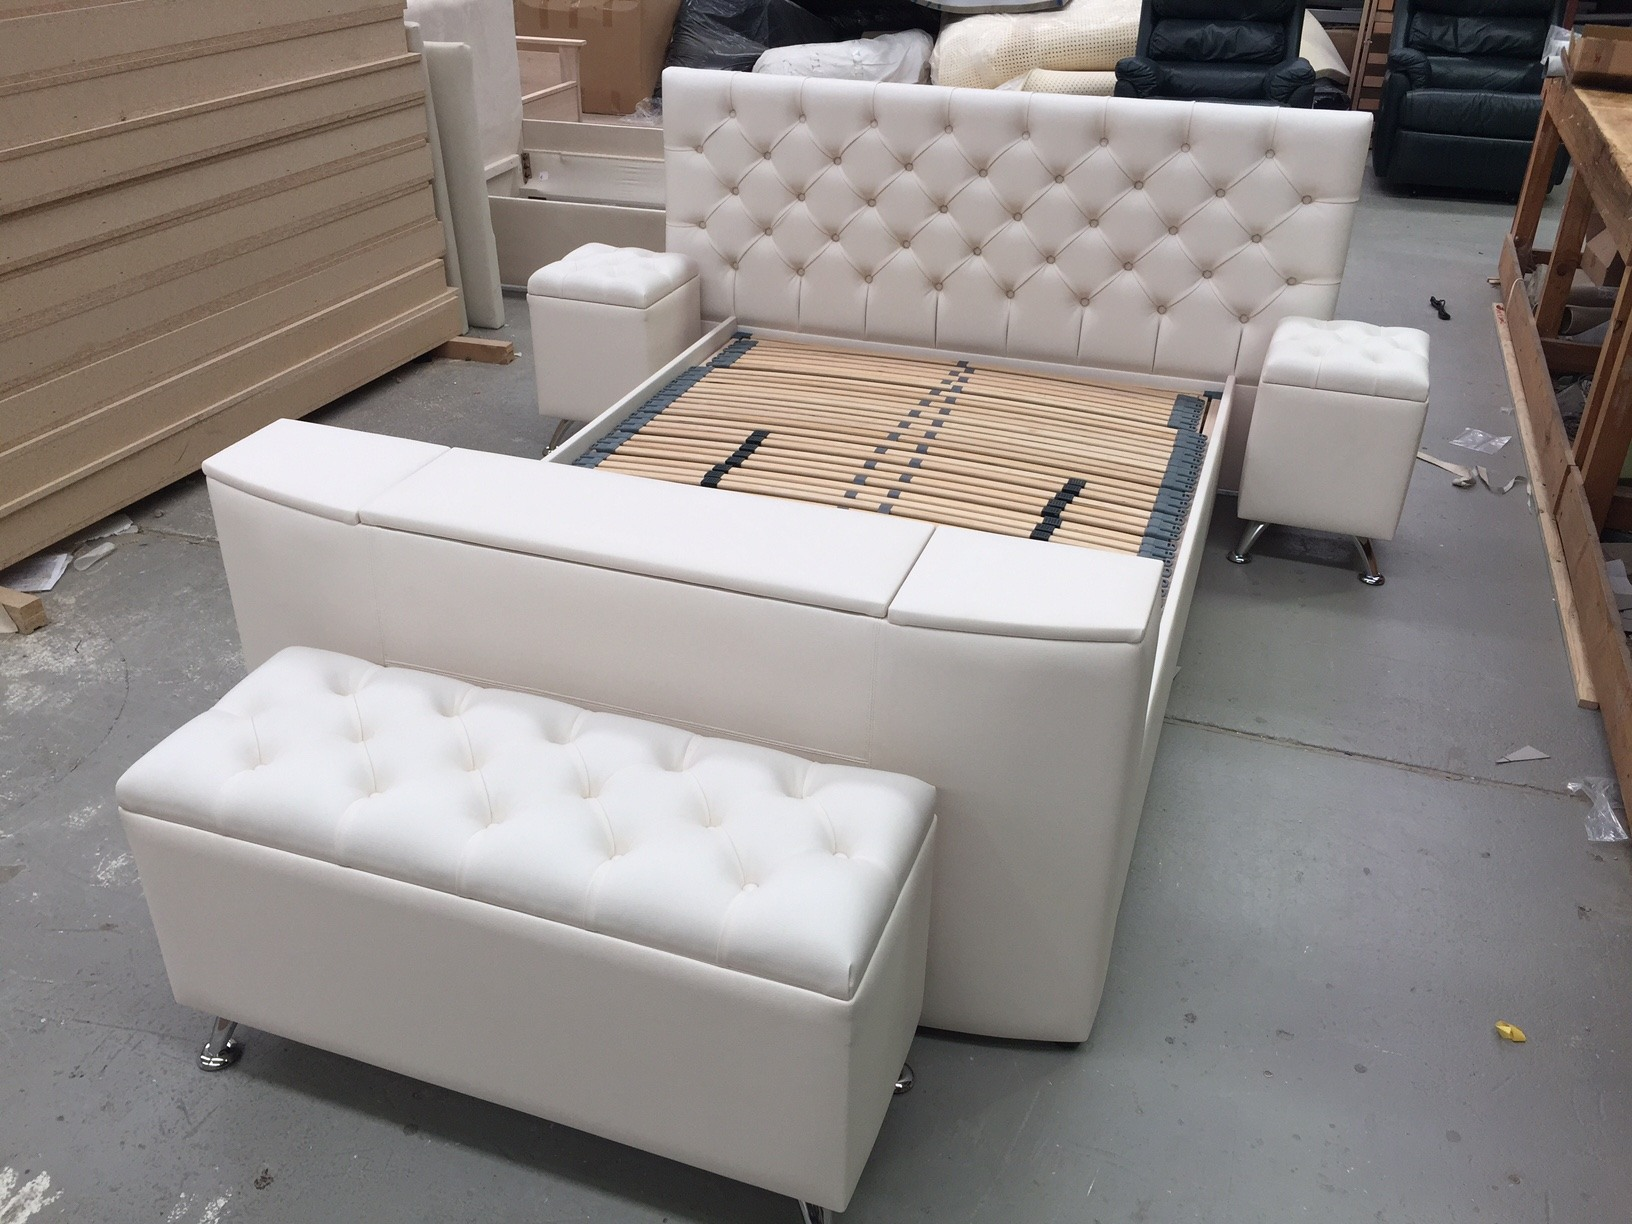 Electric Adjustable Beds Specialist, Adjustable Electric S16-Perth-With-Ottoman The Perth With Ottoman Designs